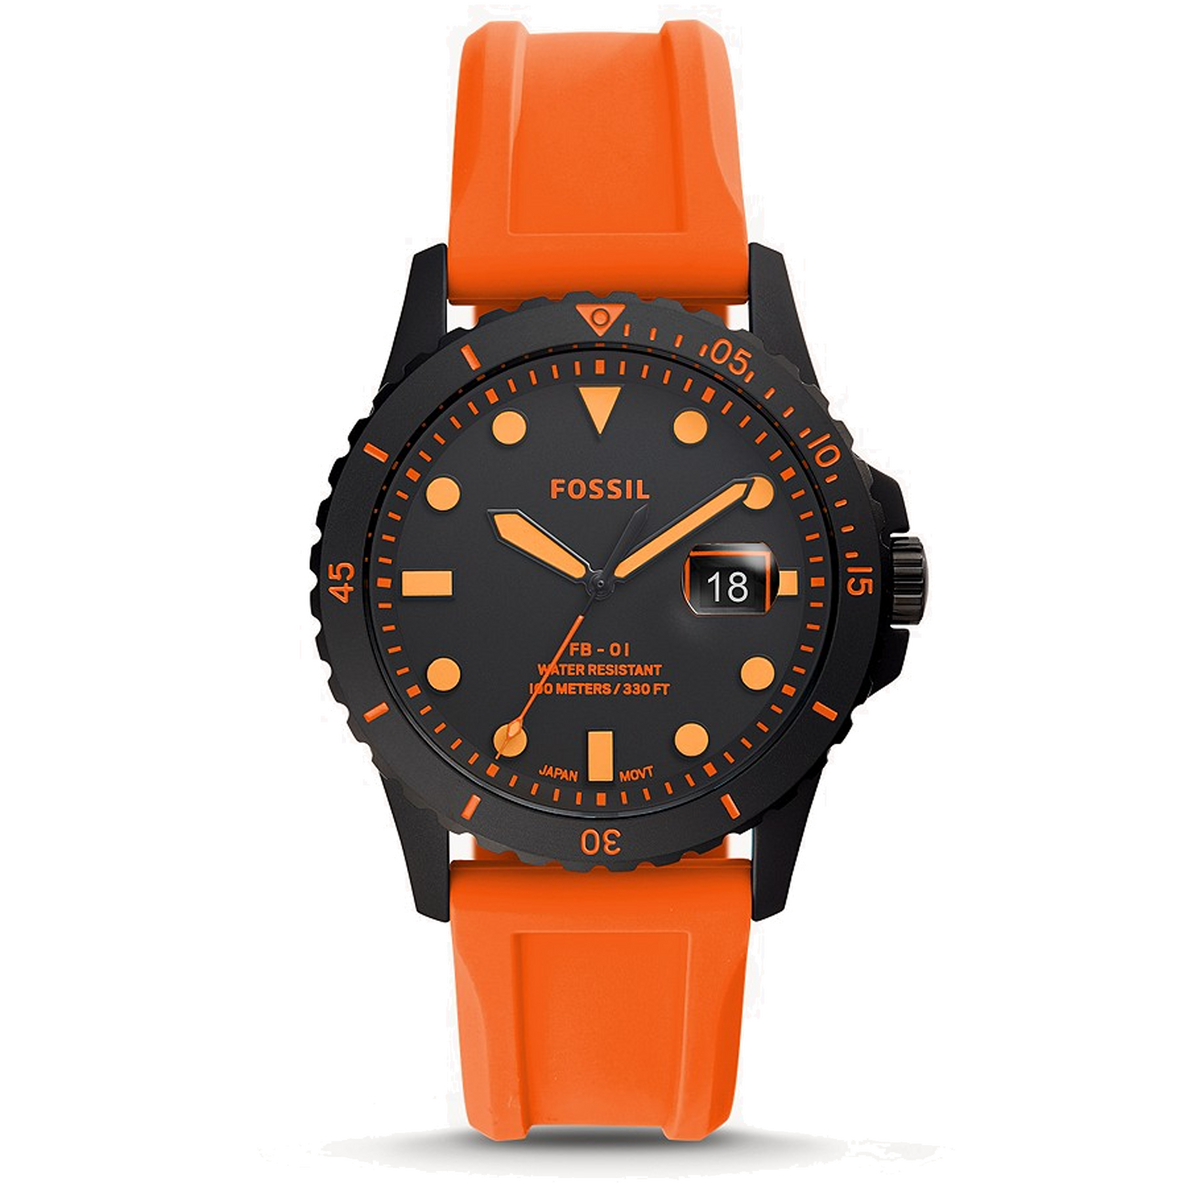 Fossil Watch FB-01: Black Stainless Steel